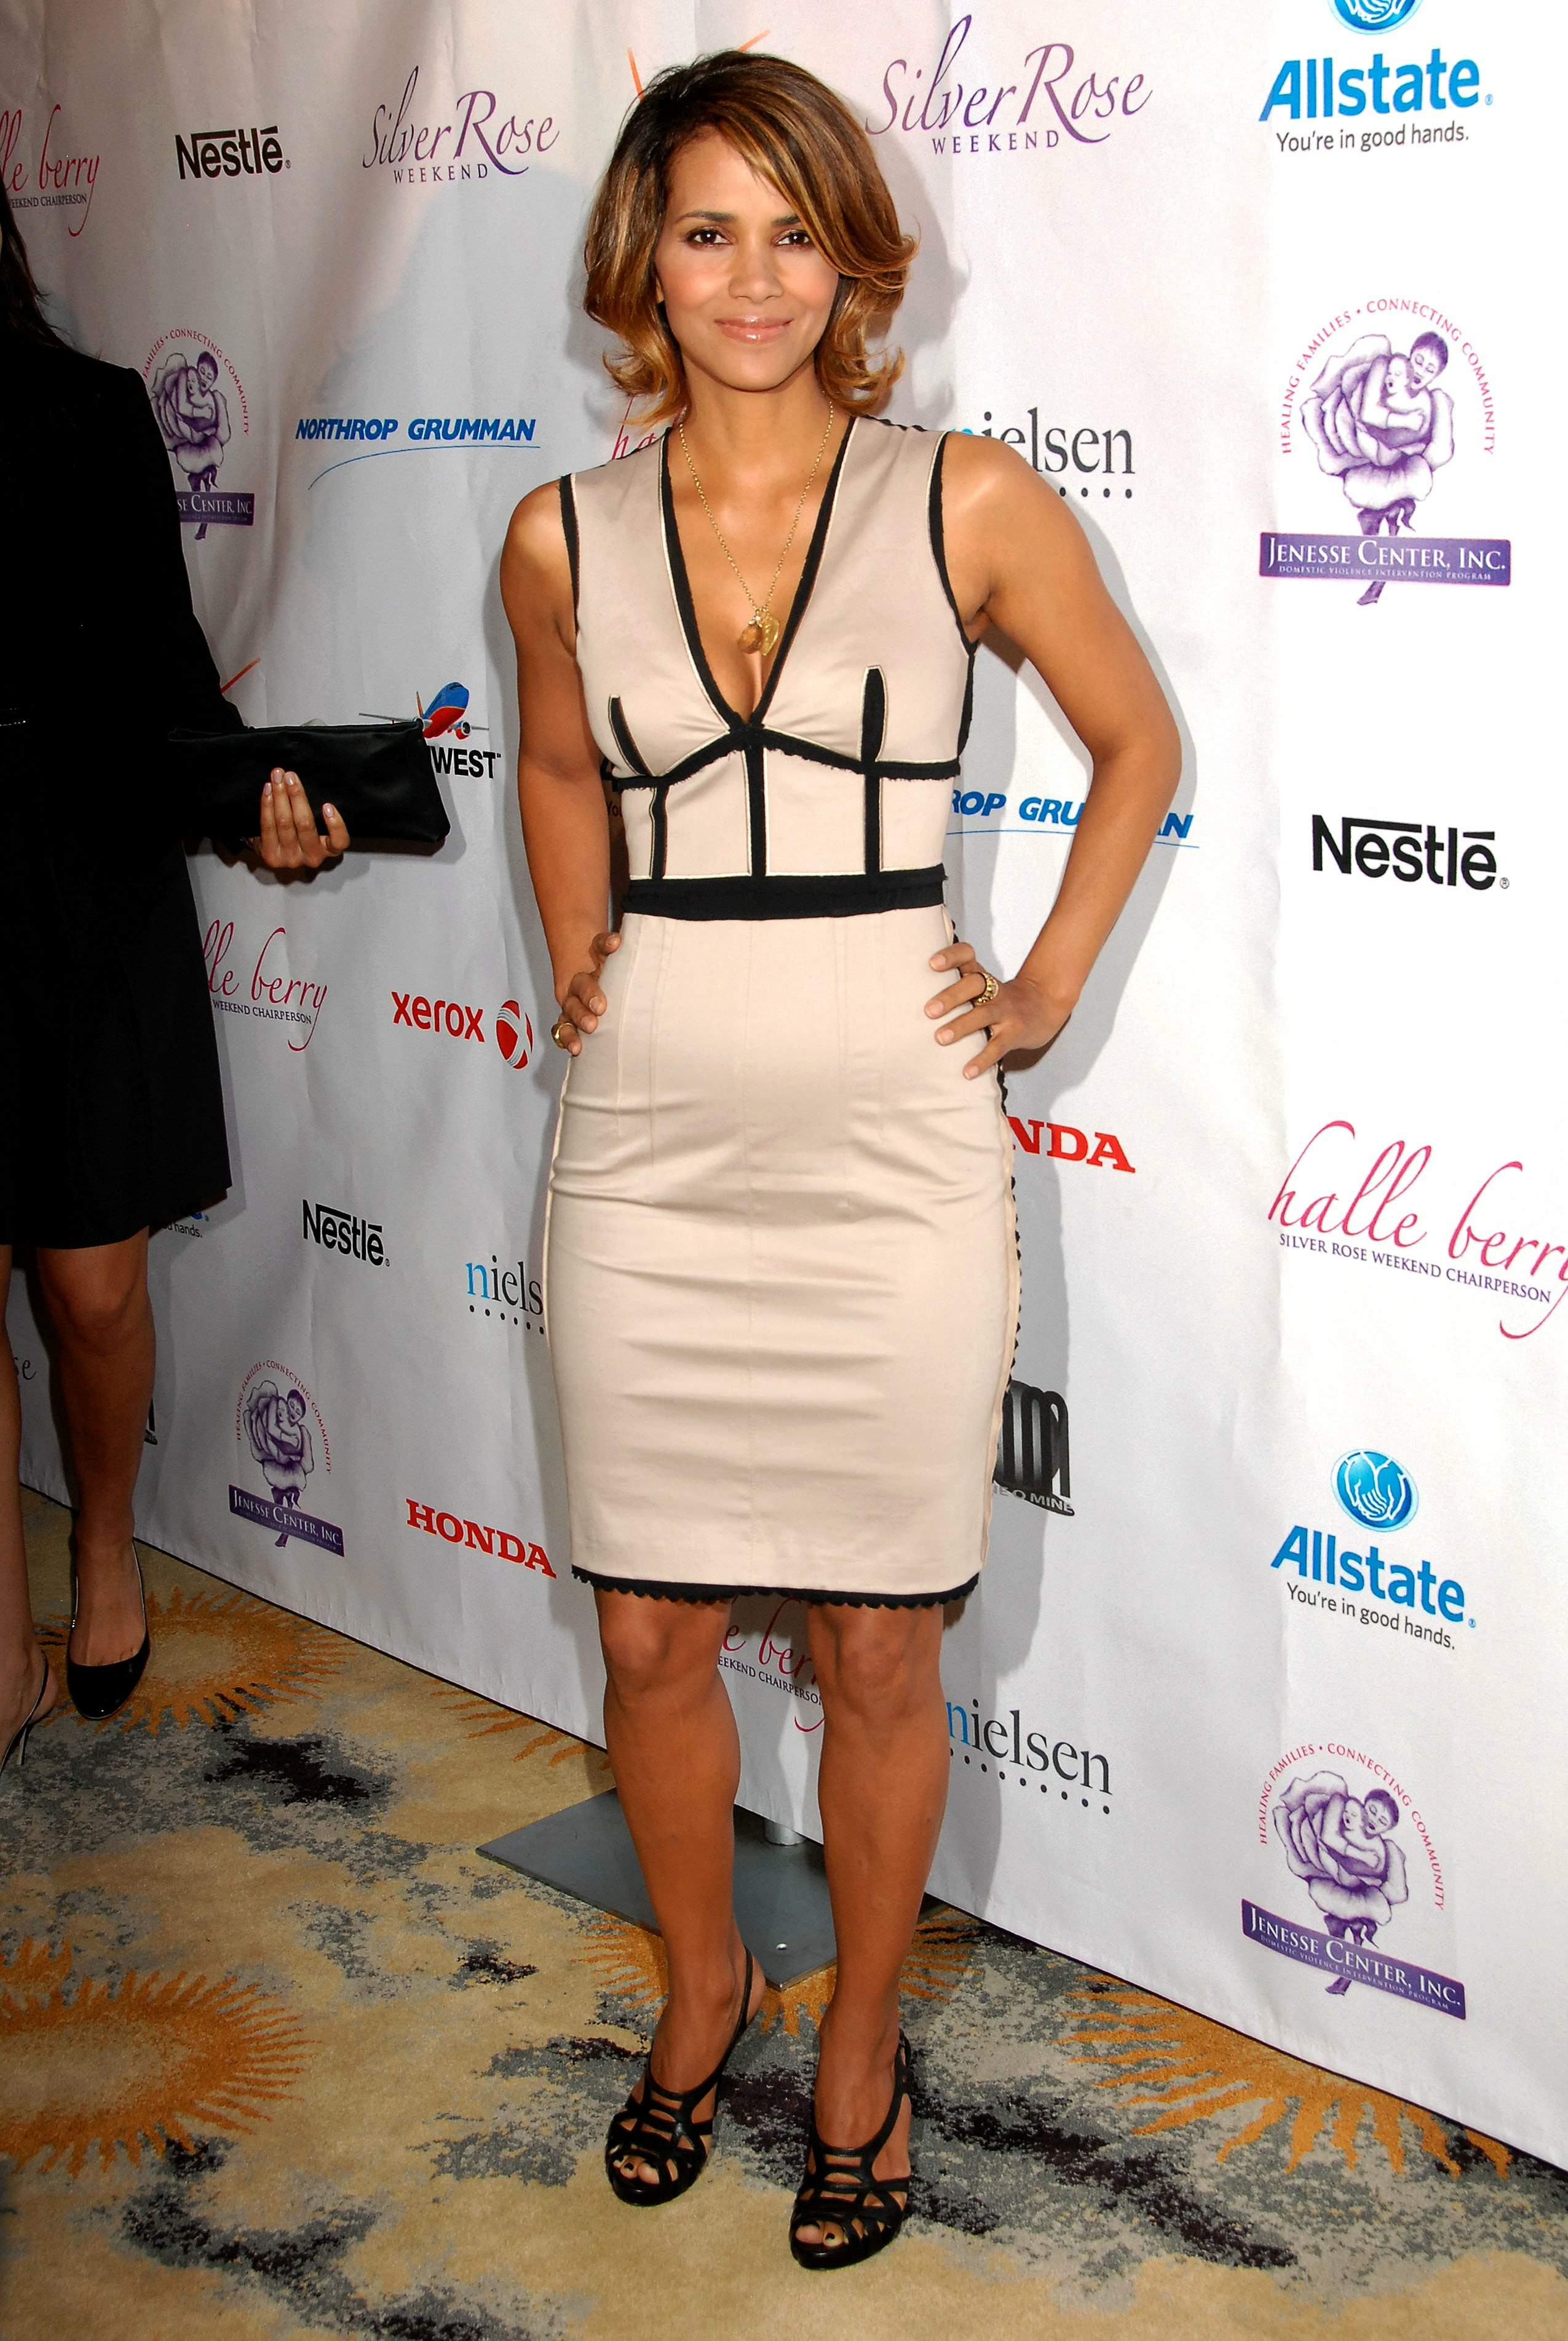 62350_Halle_Berry_2009_Jenesse_Silver_Rose_Gala_Auction_in_Beverly_Hills_21_122_133lo.jpg